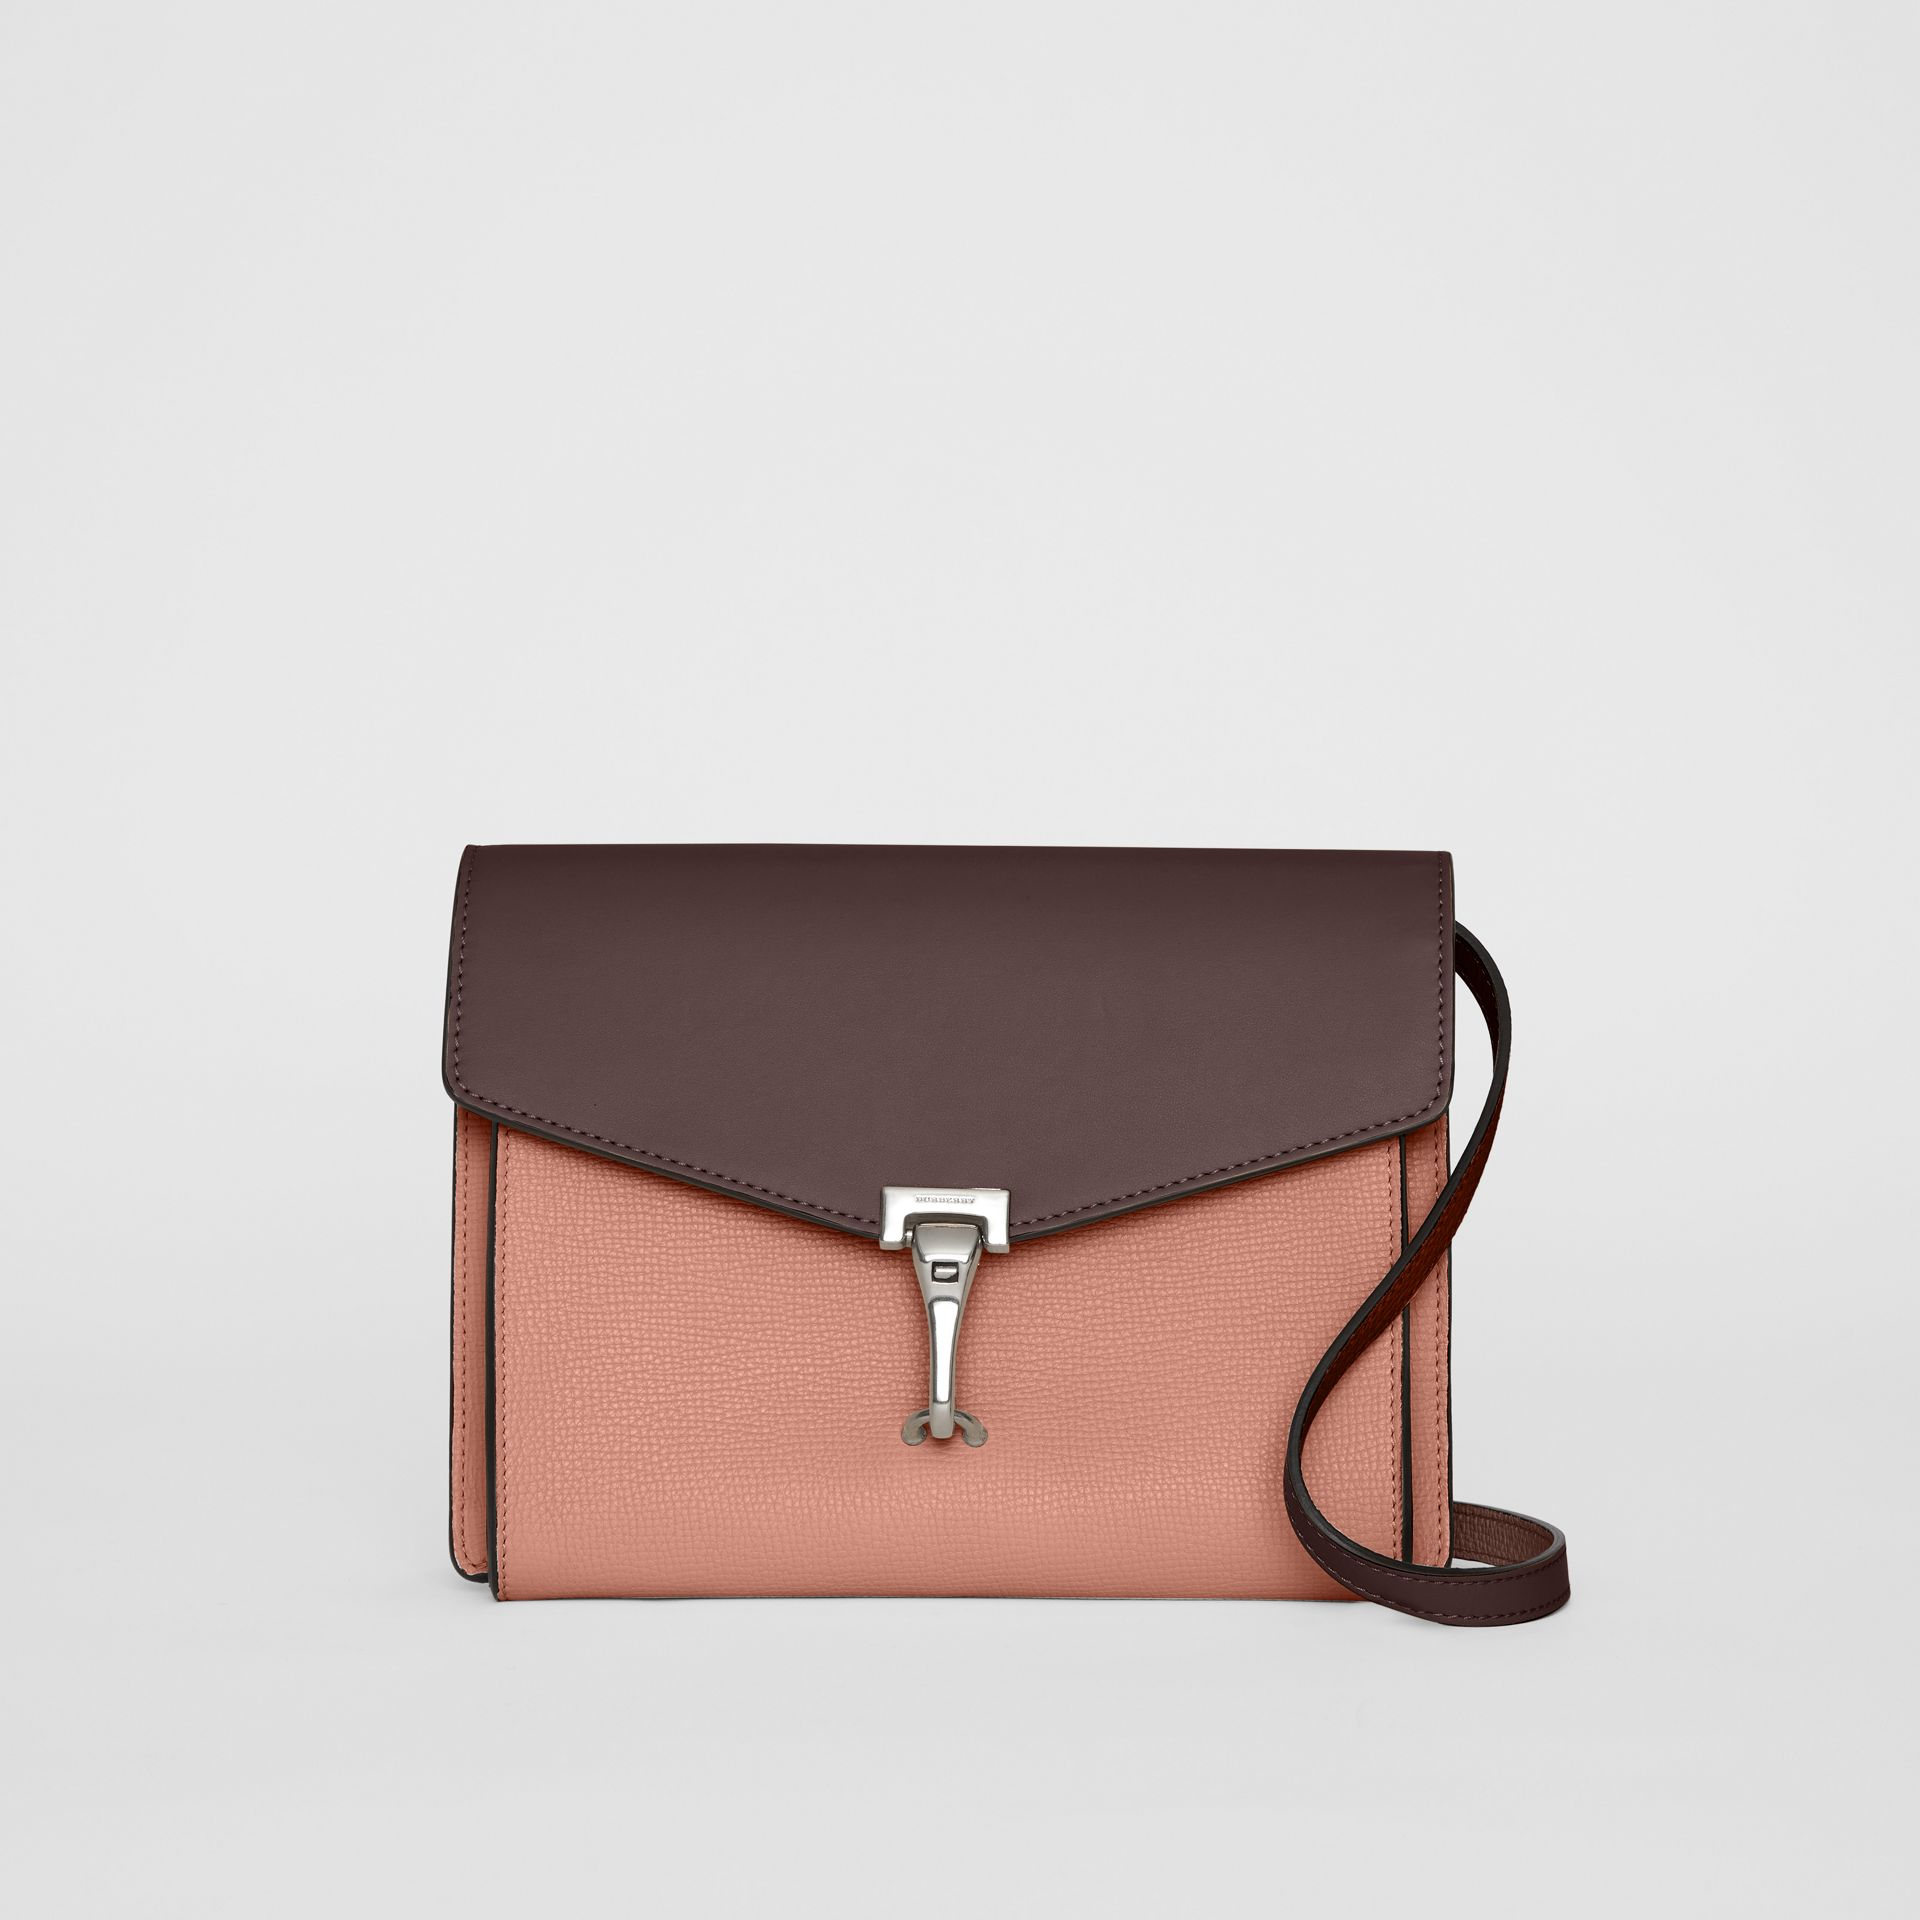 Two-tone Leather Crossbody Bag in Dusty Rose/deep Claret - Women | Burberry - gallery image 0